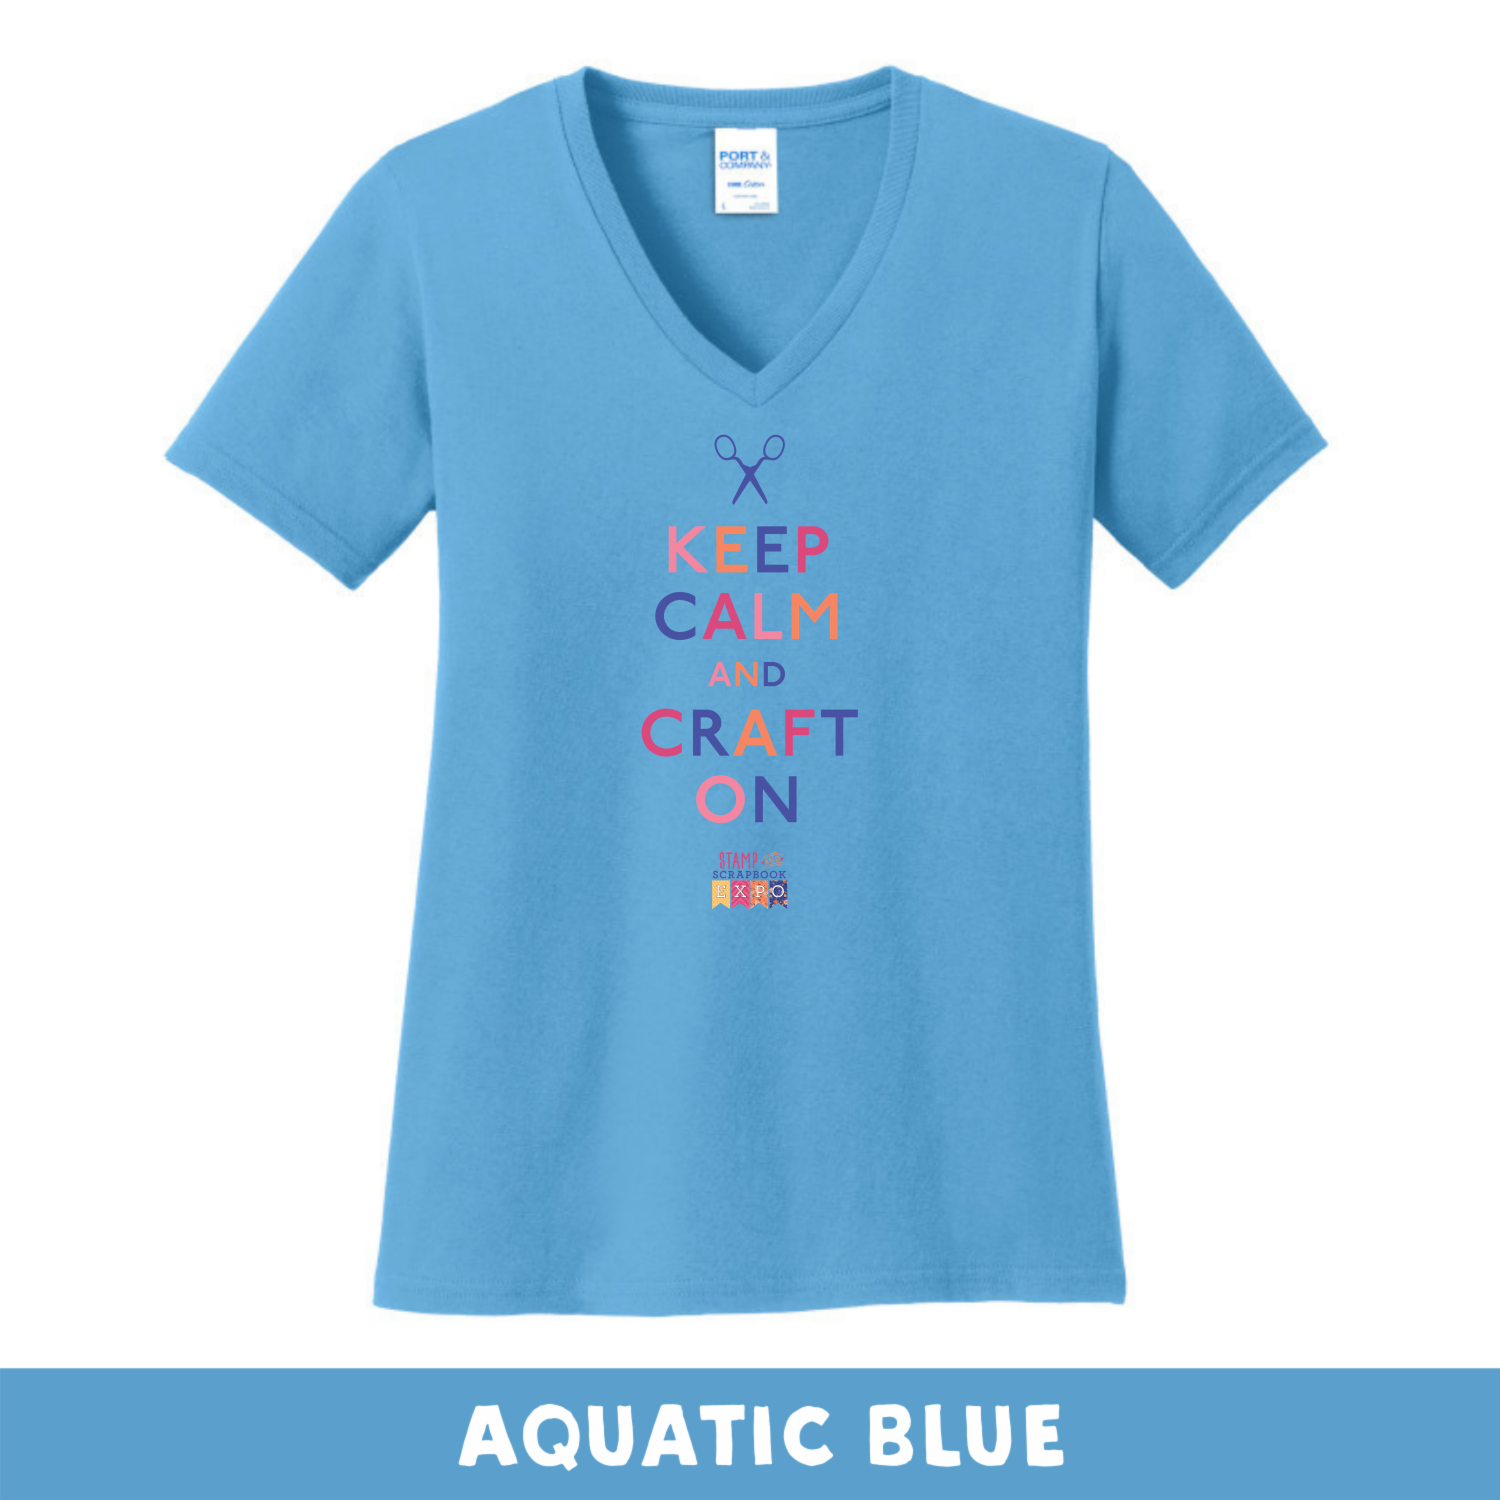 Aquatic Blue - V-Neck Woman's Cut - Keep Calm & Craft On